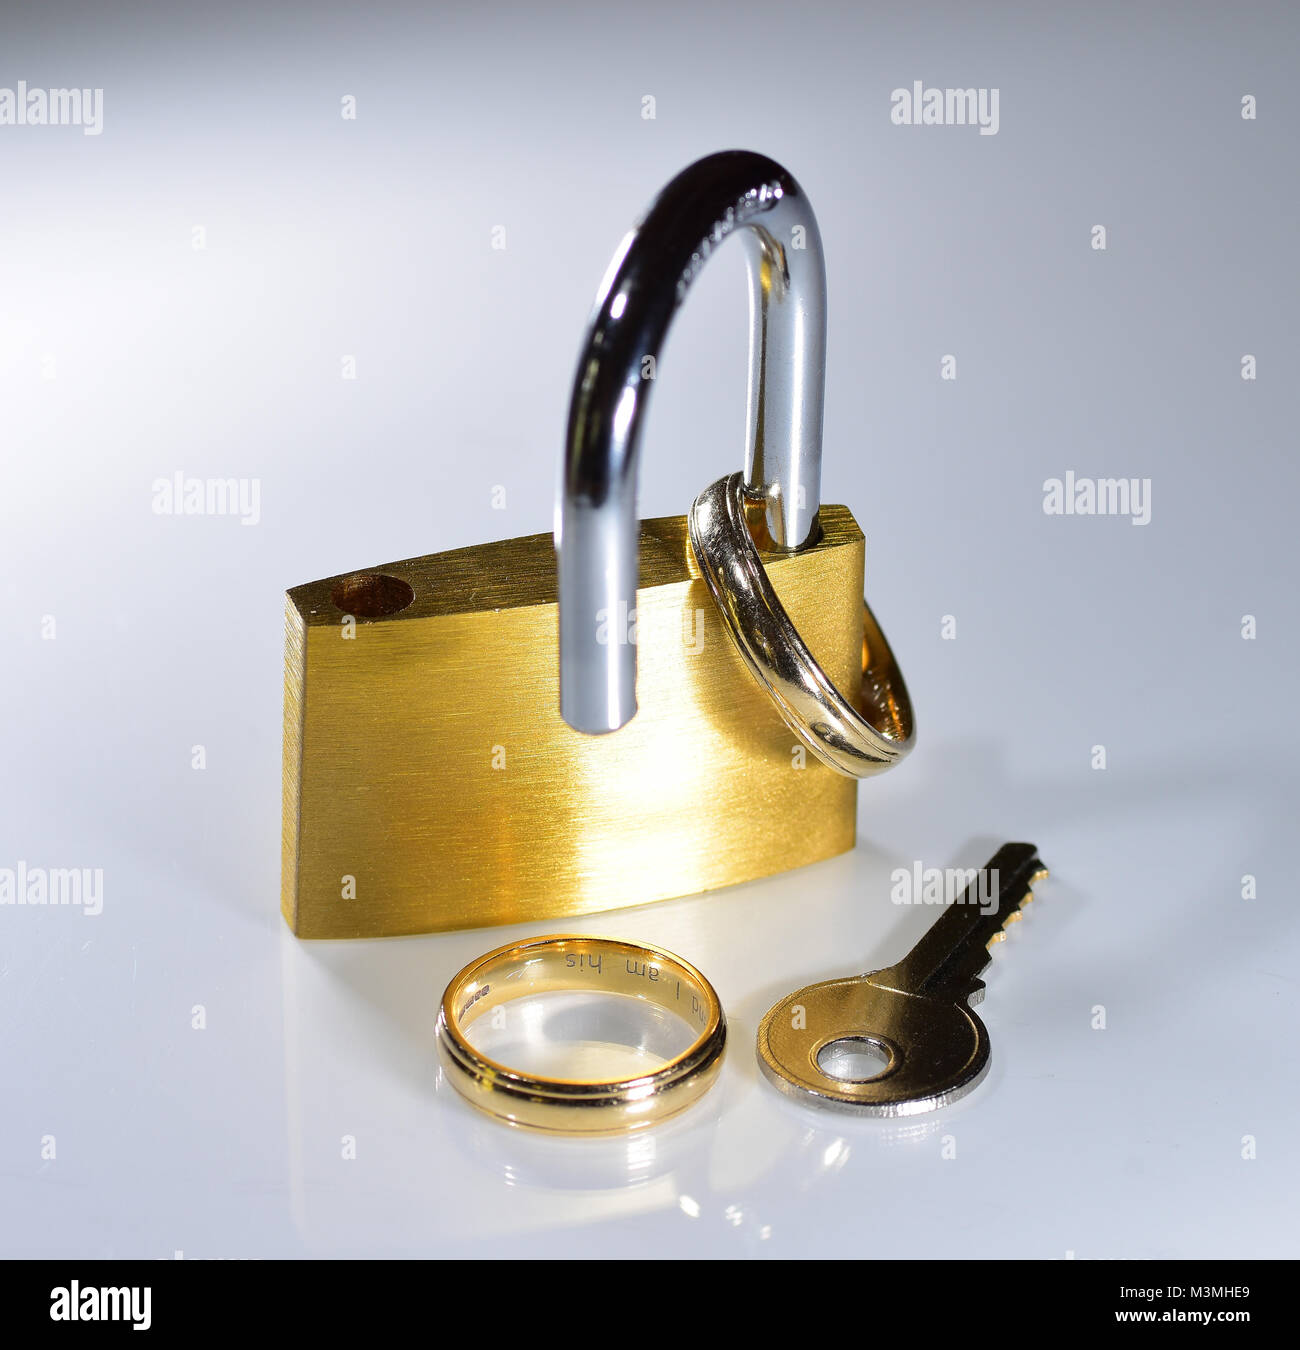 image displaying view wedding gallery illustration rings attachment awesome broken full elegant isolated gold of stock